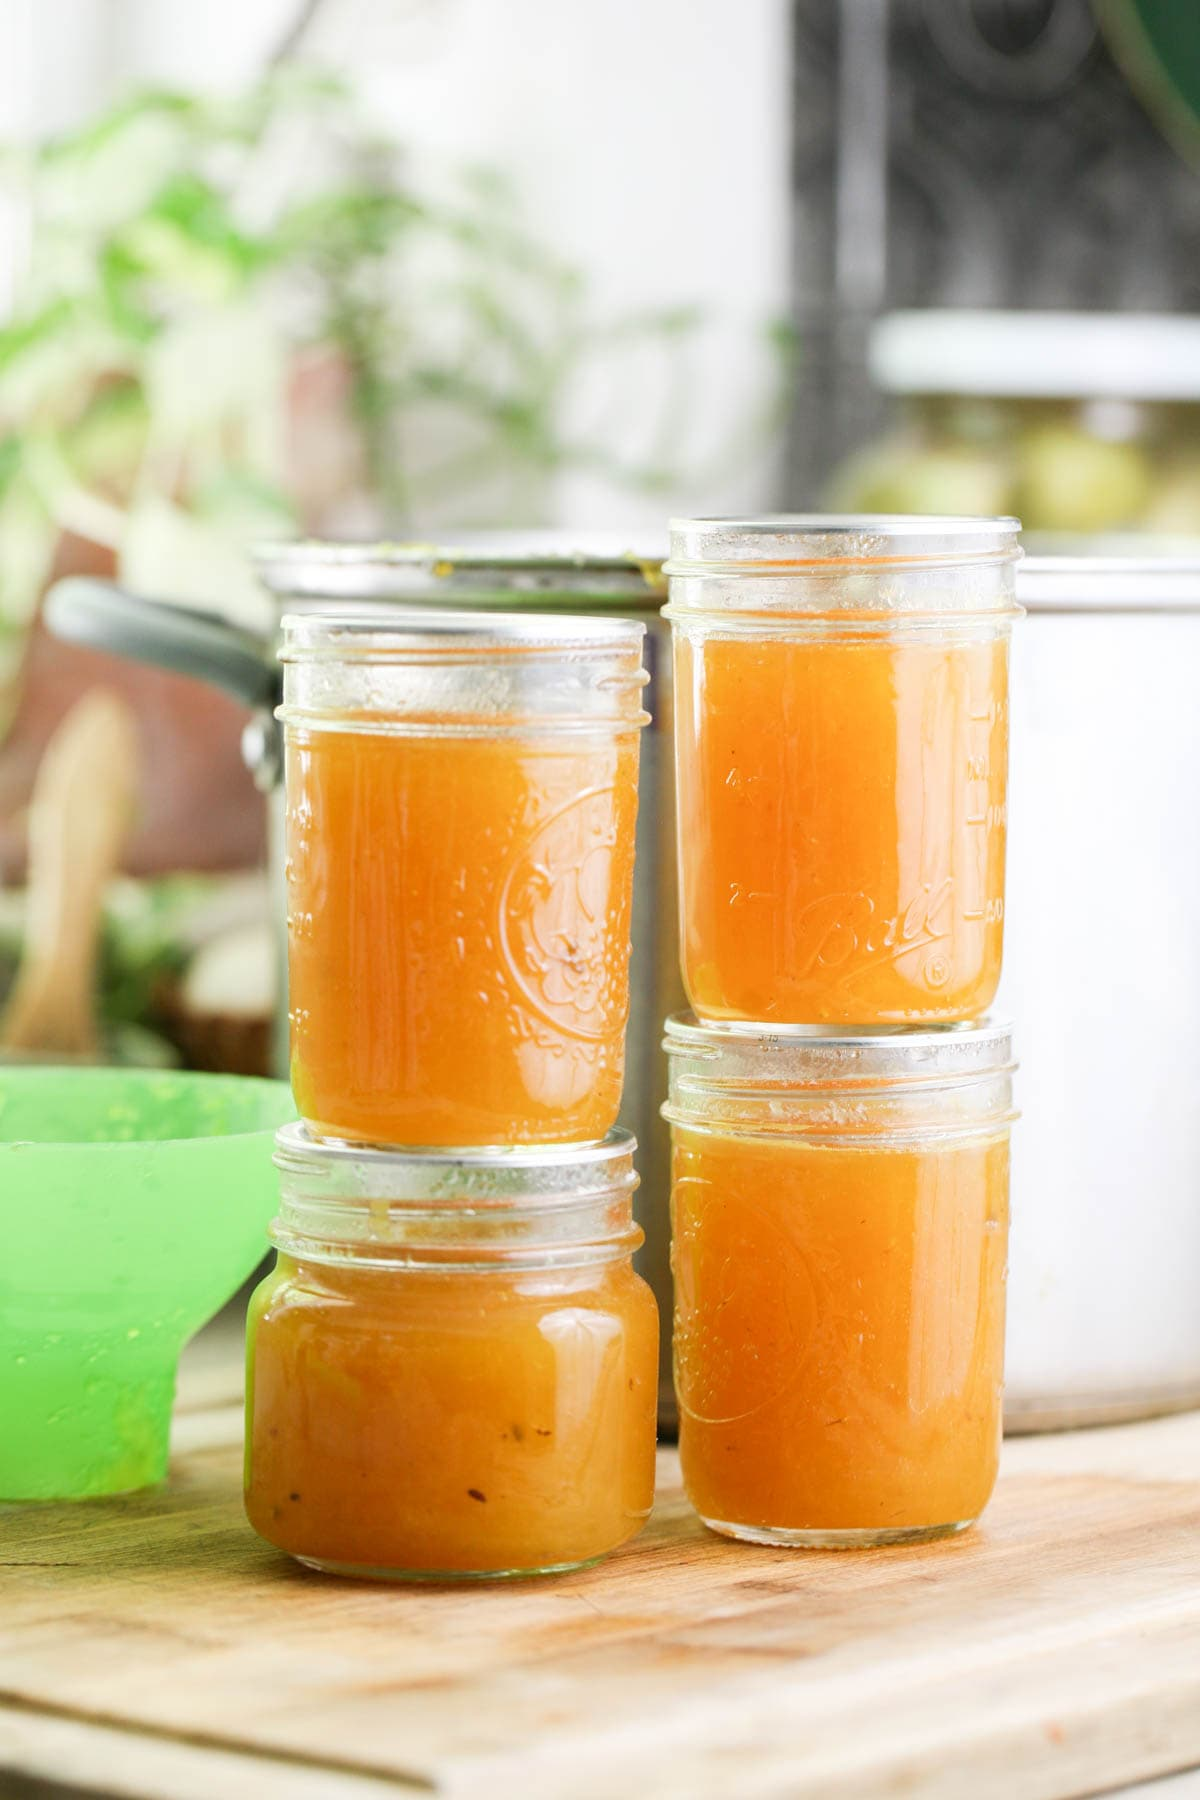 Jars of this easy pineapple jam recipe after canning.